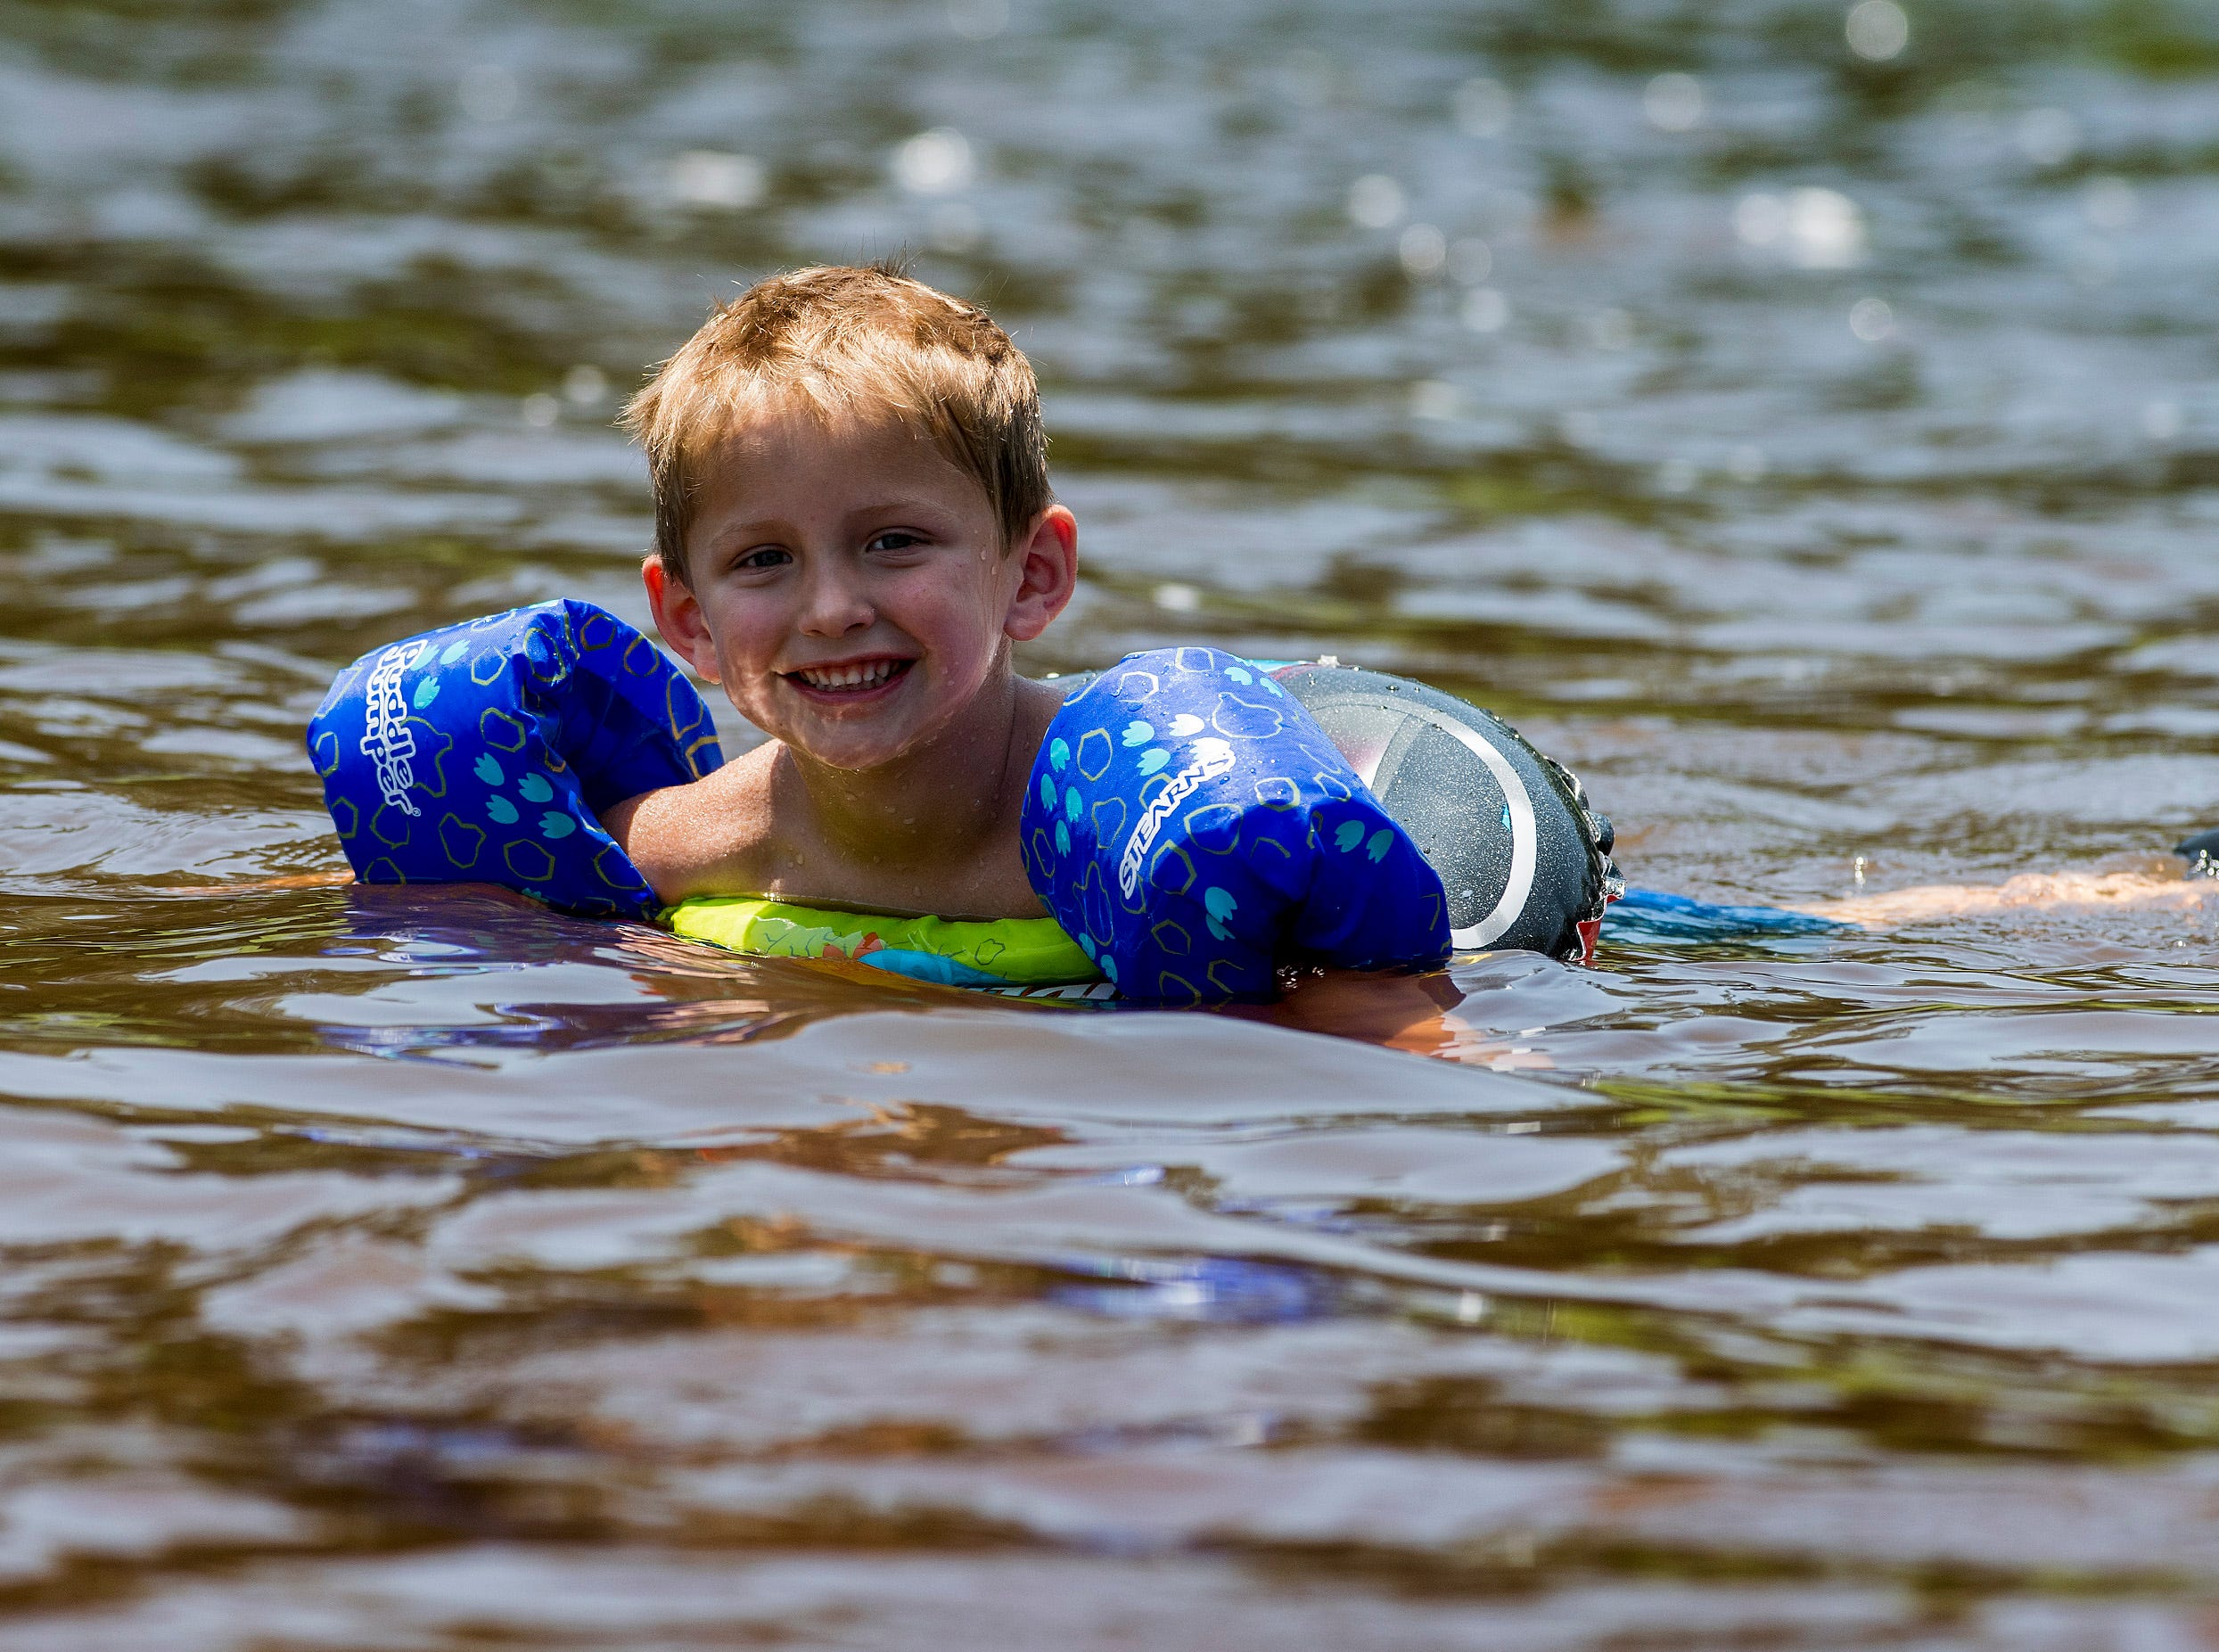 Sawyer Sims floats in Autauga Creek in Prattville, Ala., on Saturday, July 21, 2018.